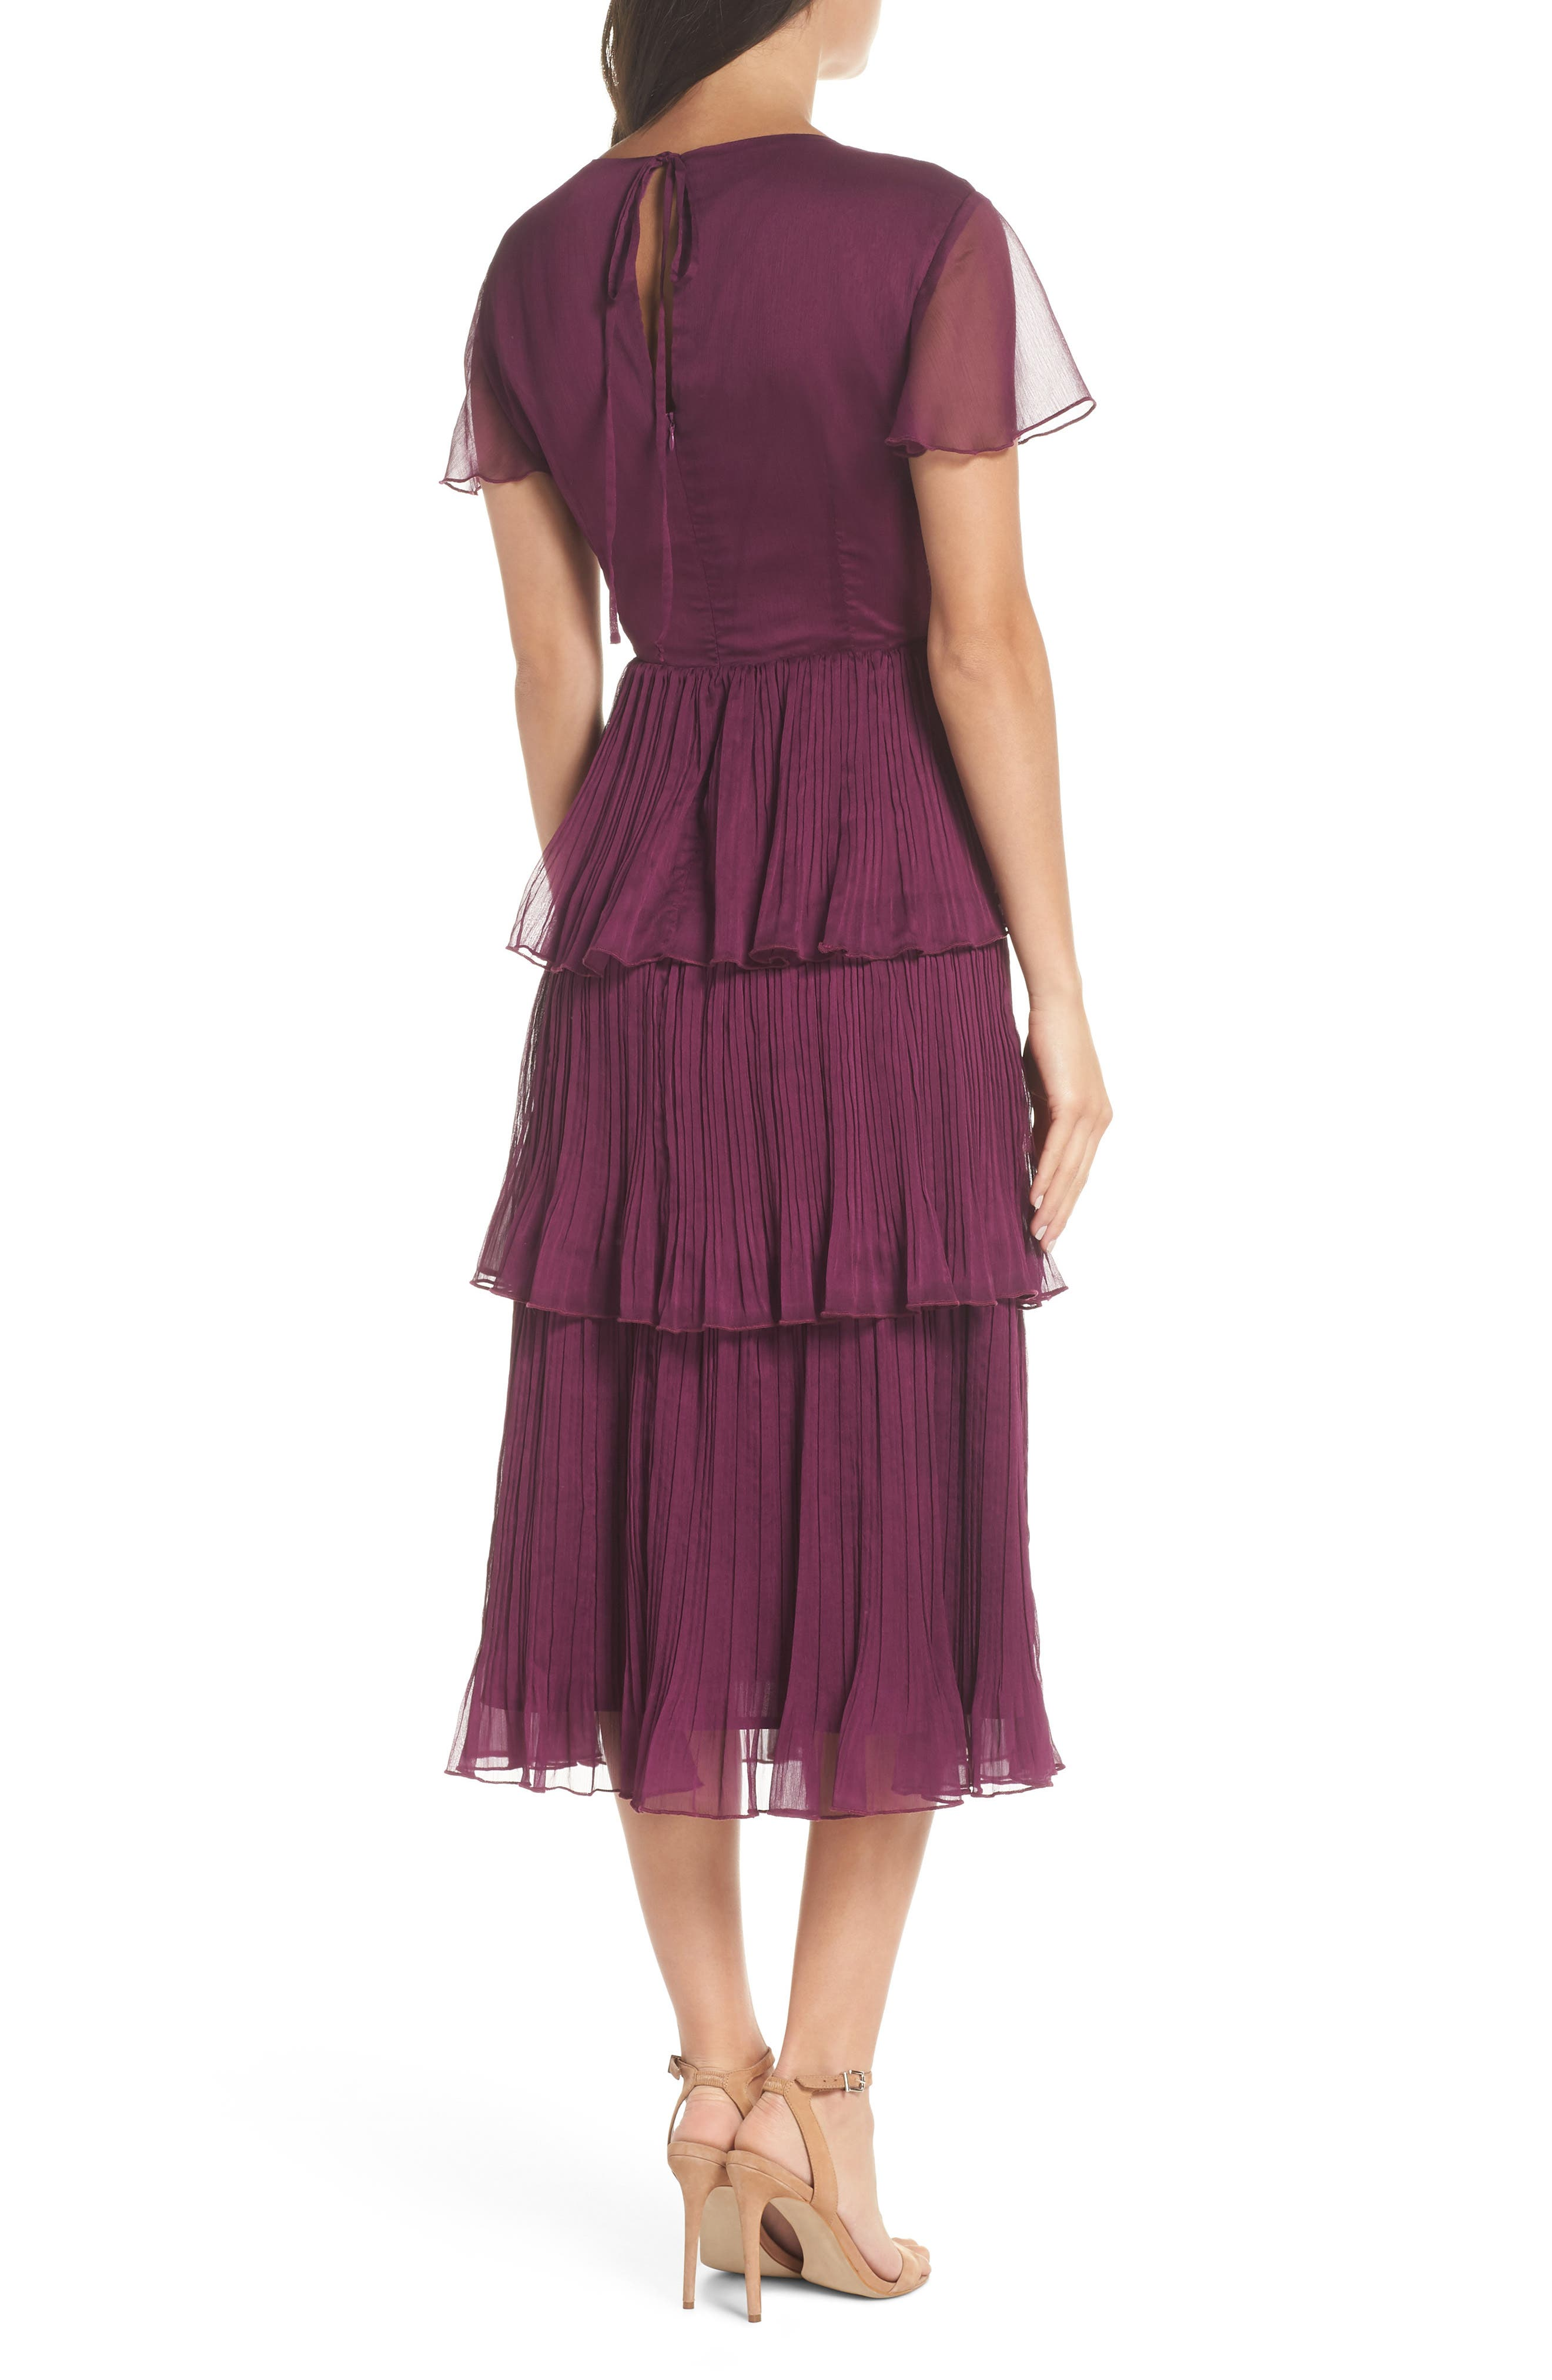 Tiered Skirt Midi Dress,                             Alternate thumbnail 2, color,                             PURPLE DARK